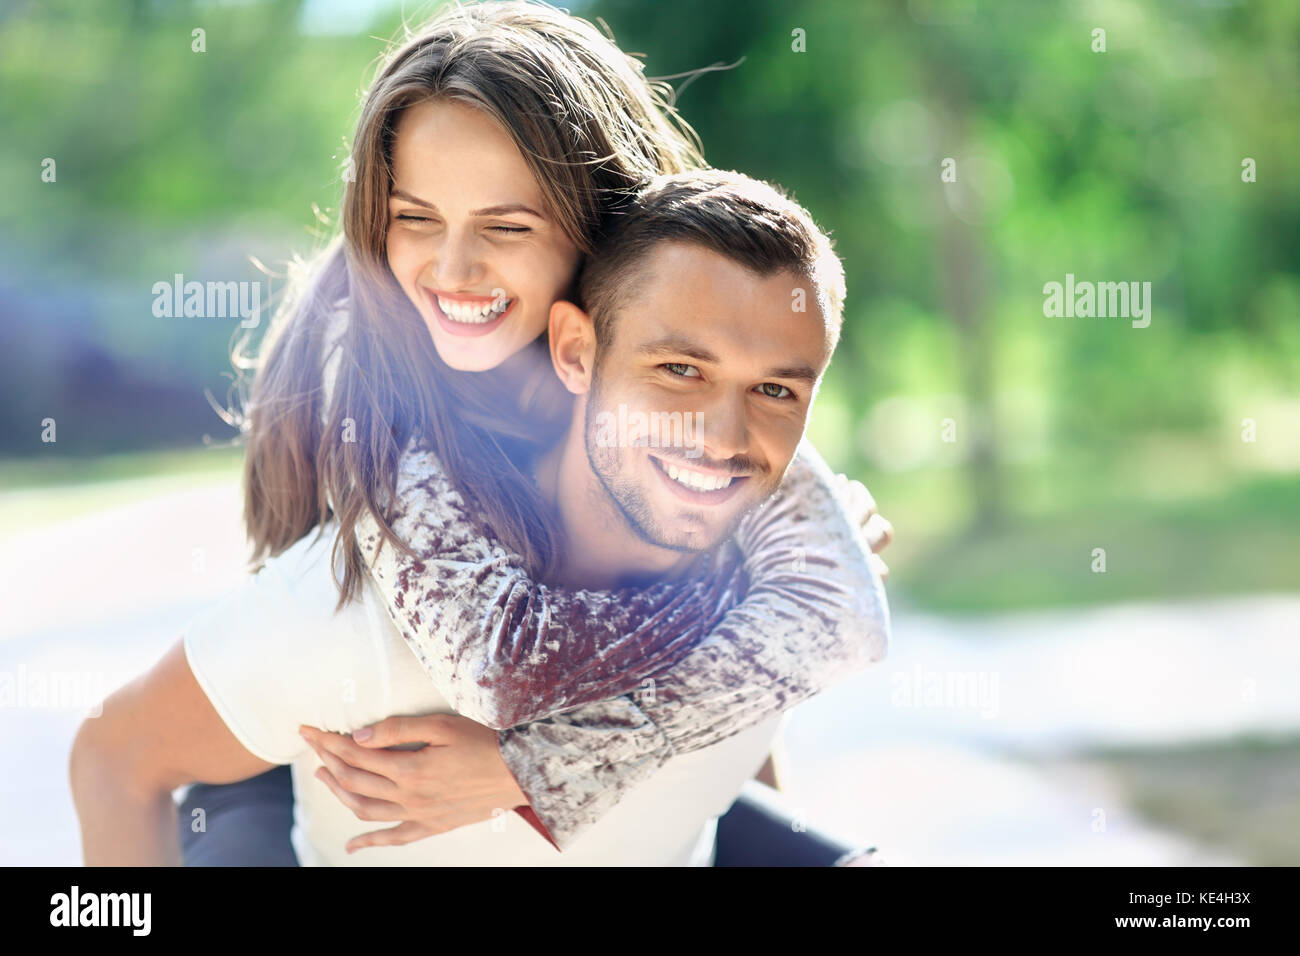 Man carrying his girlfriend on the back. Happy laughing couple piggyback. Young cheerful loving pair have fun together - Stock Image